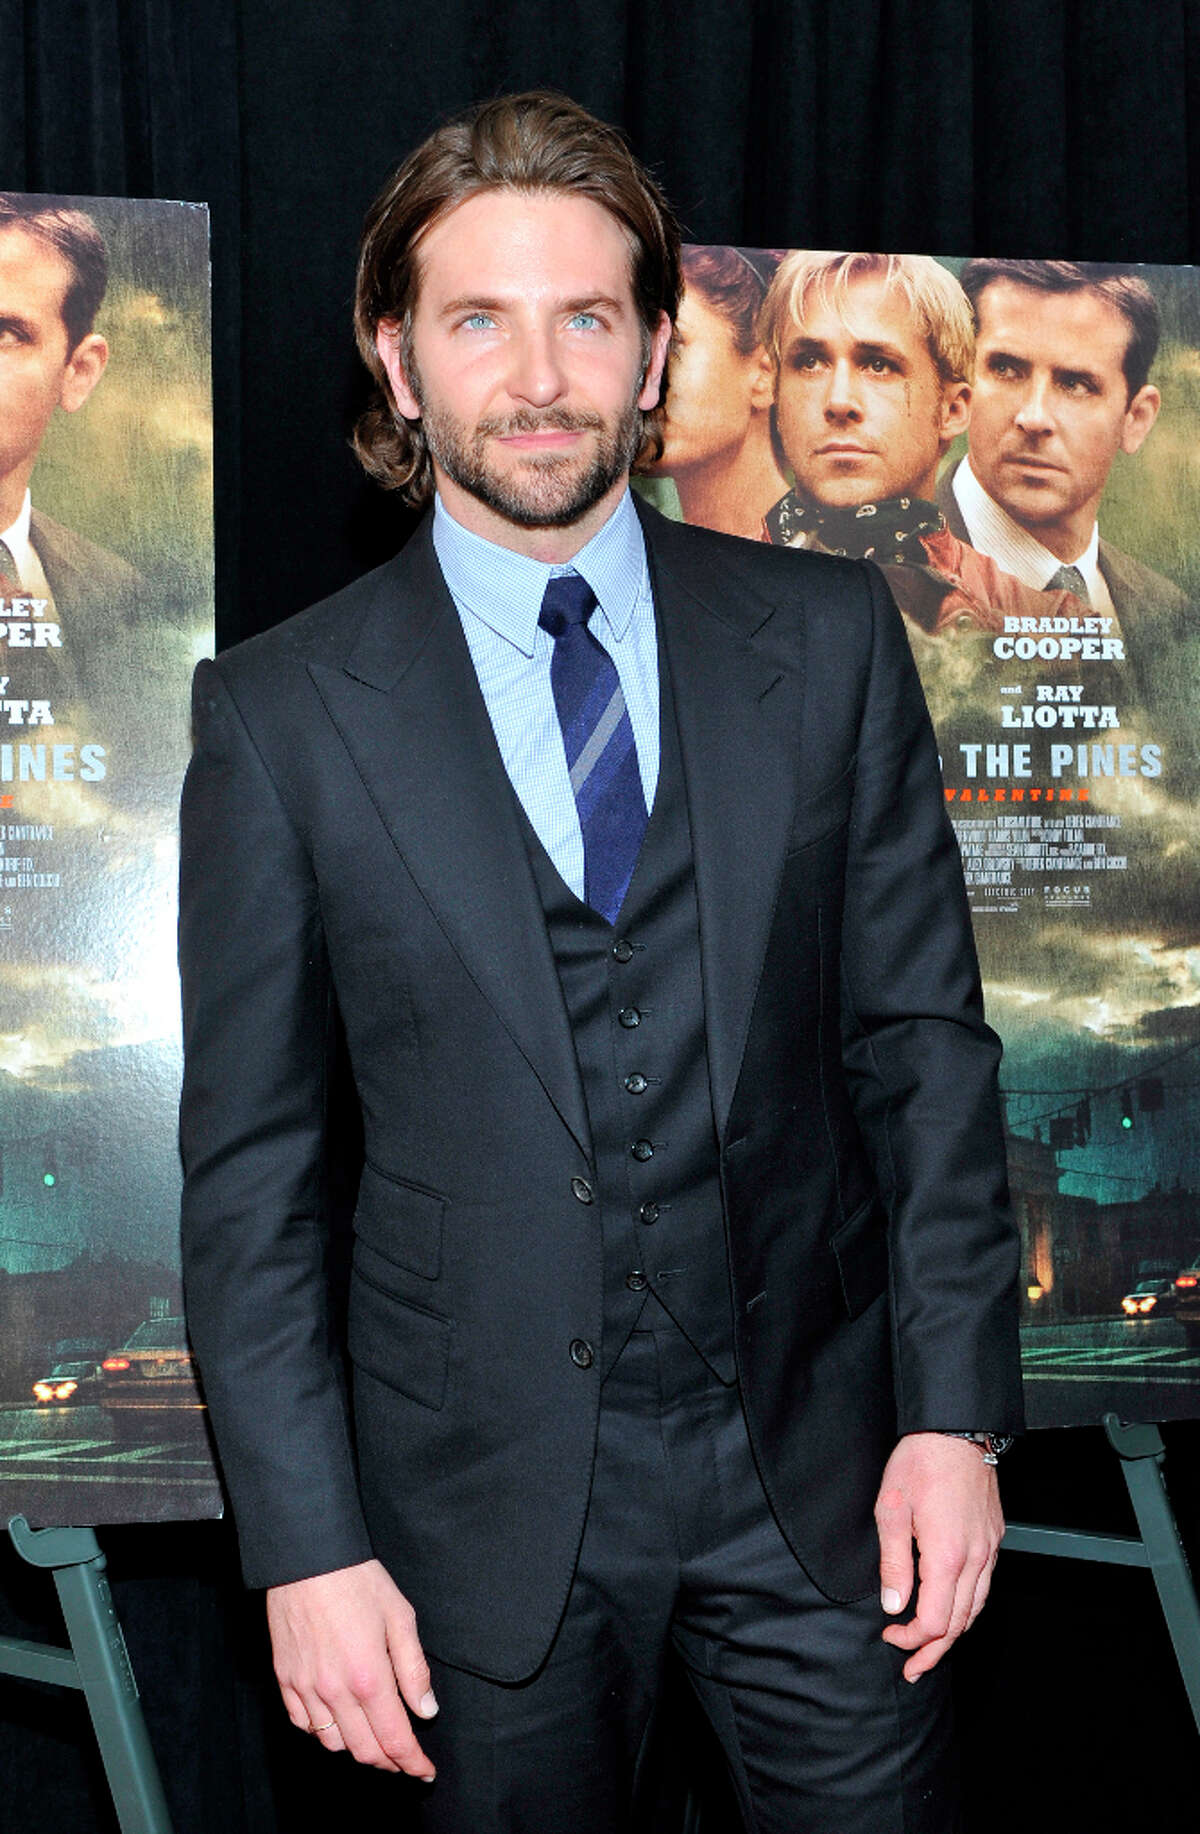 Bradley Cooper attends 'The Place Beyond The Pines' New York Premiere at Landmark Sunshine Cinema on March 28, 2013 in New York City.